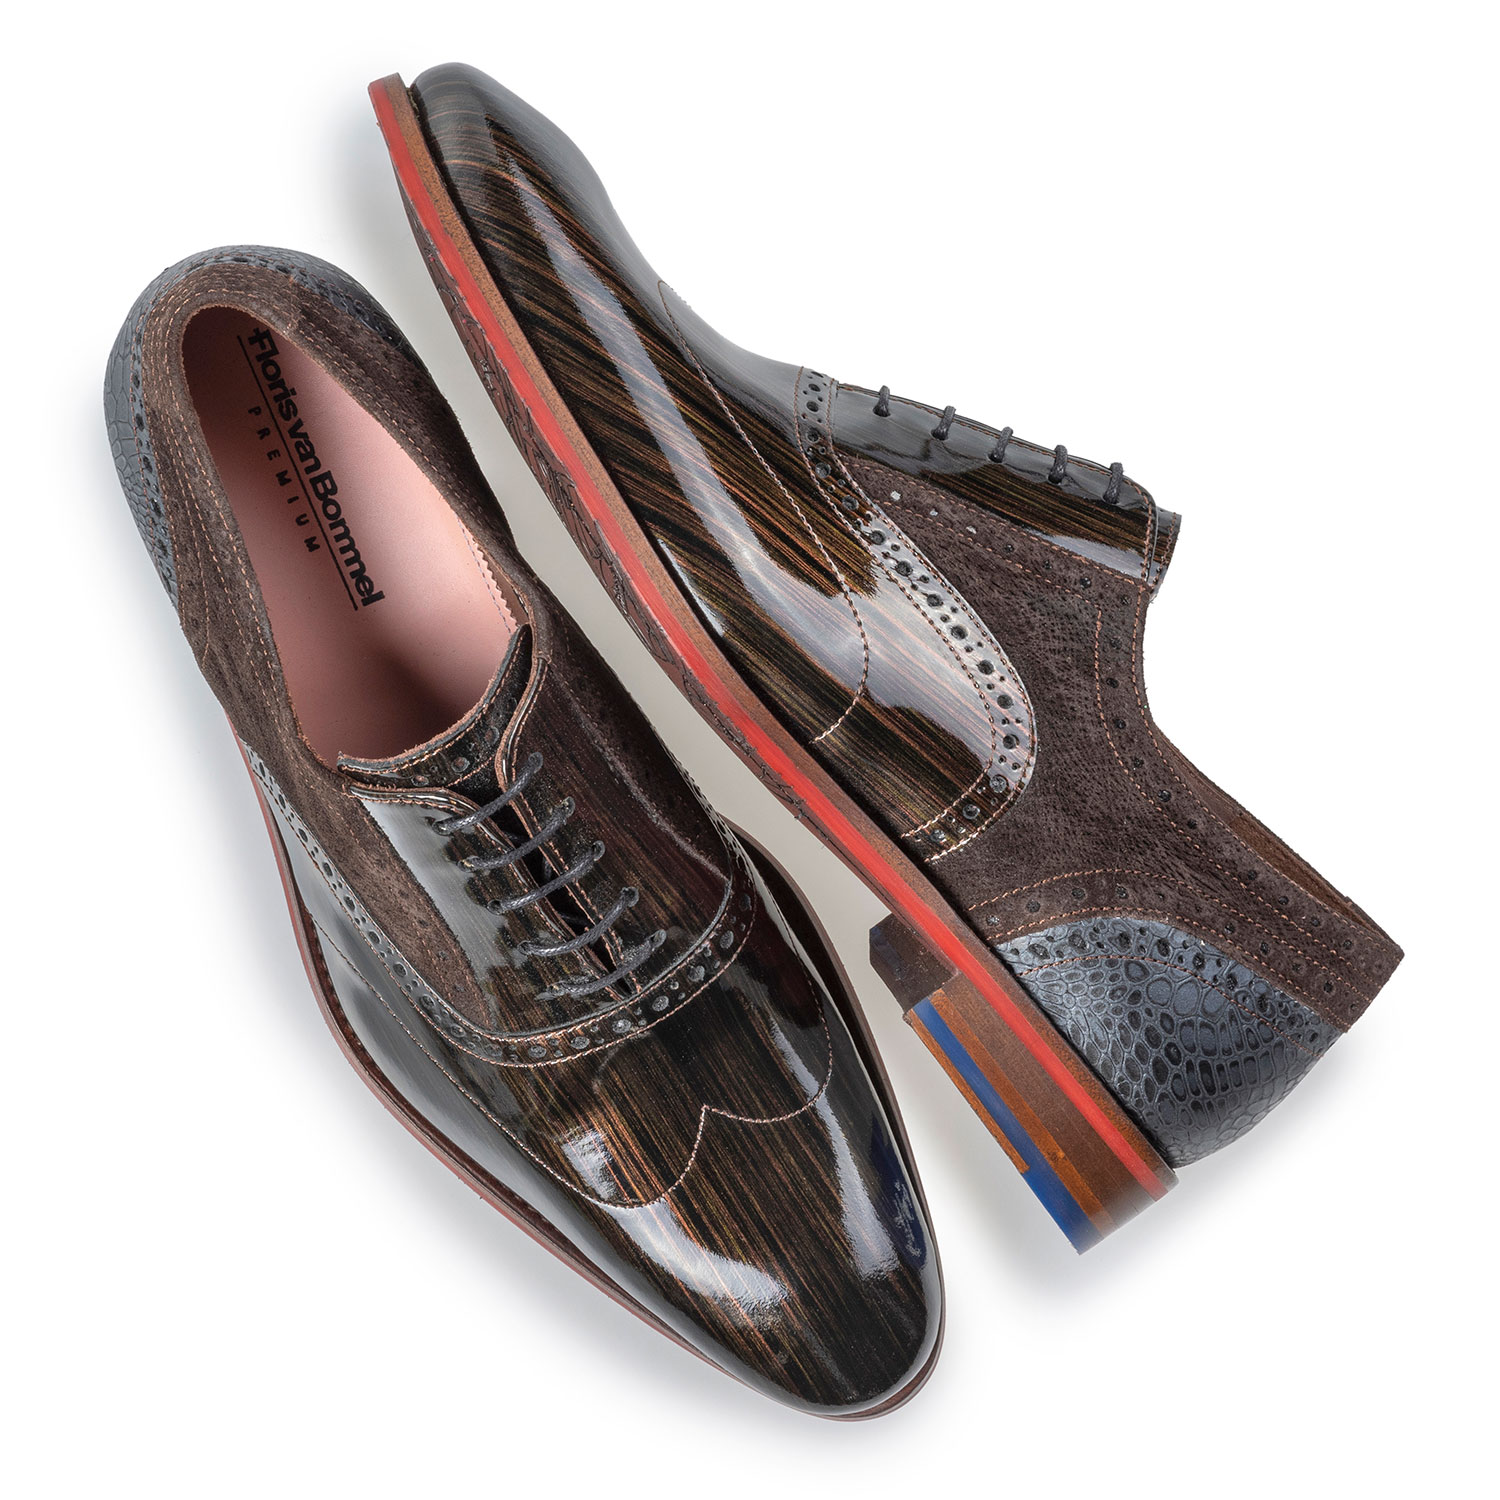 19124/03 - Brogue bronze patent leather